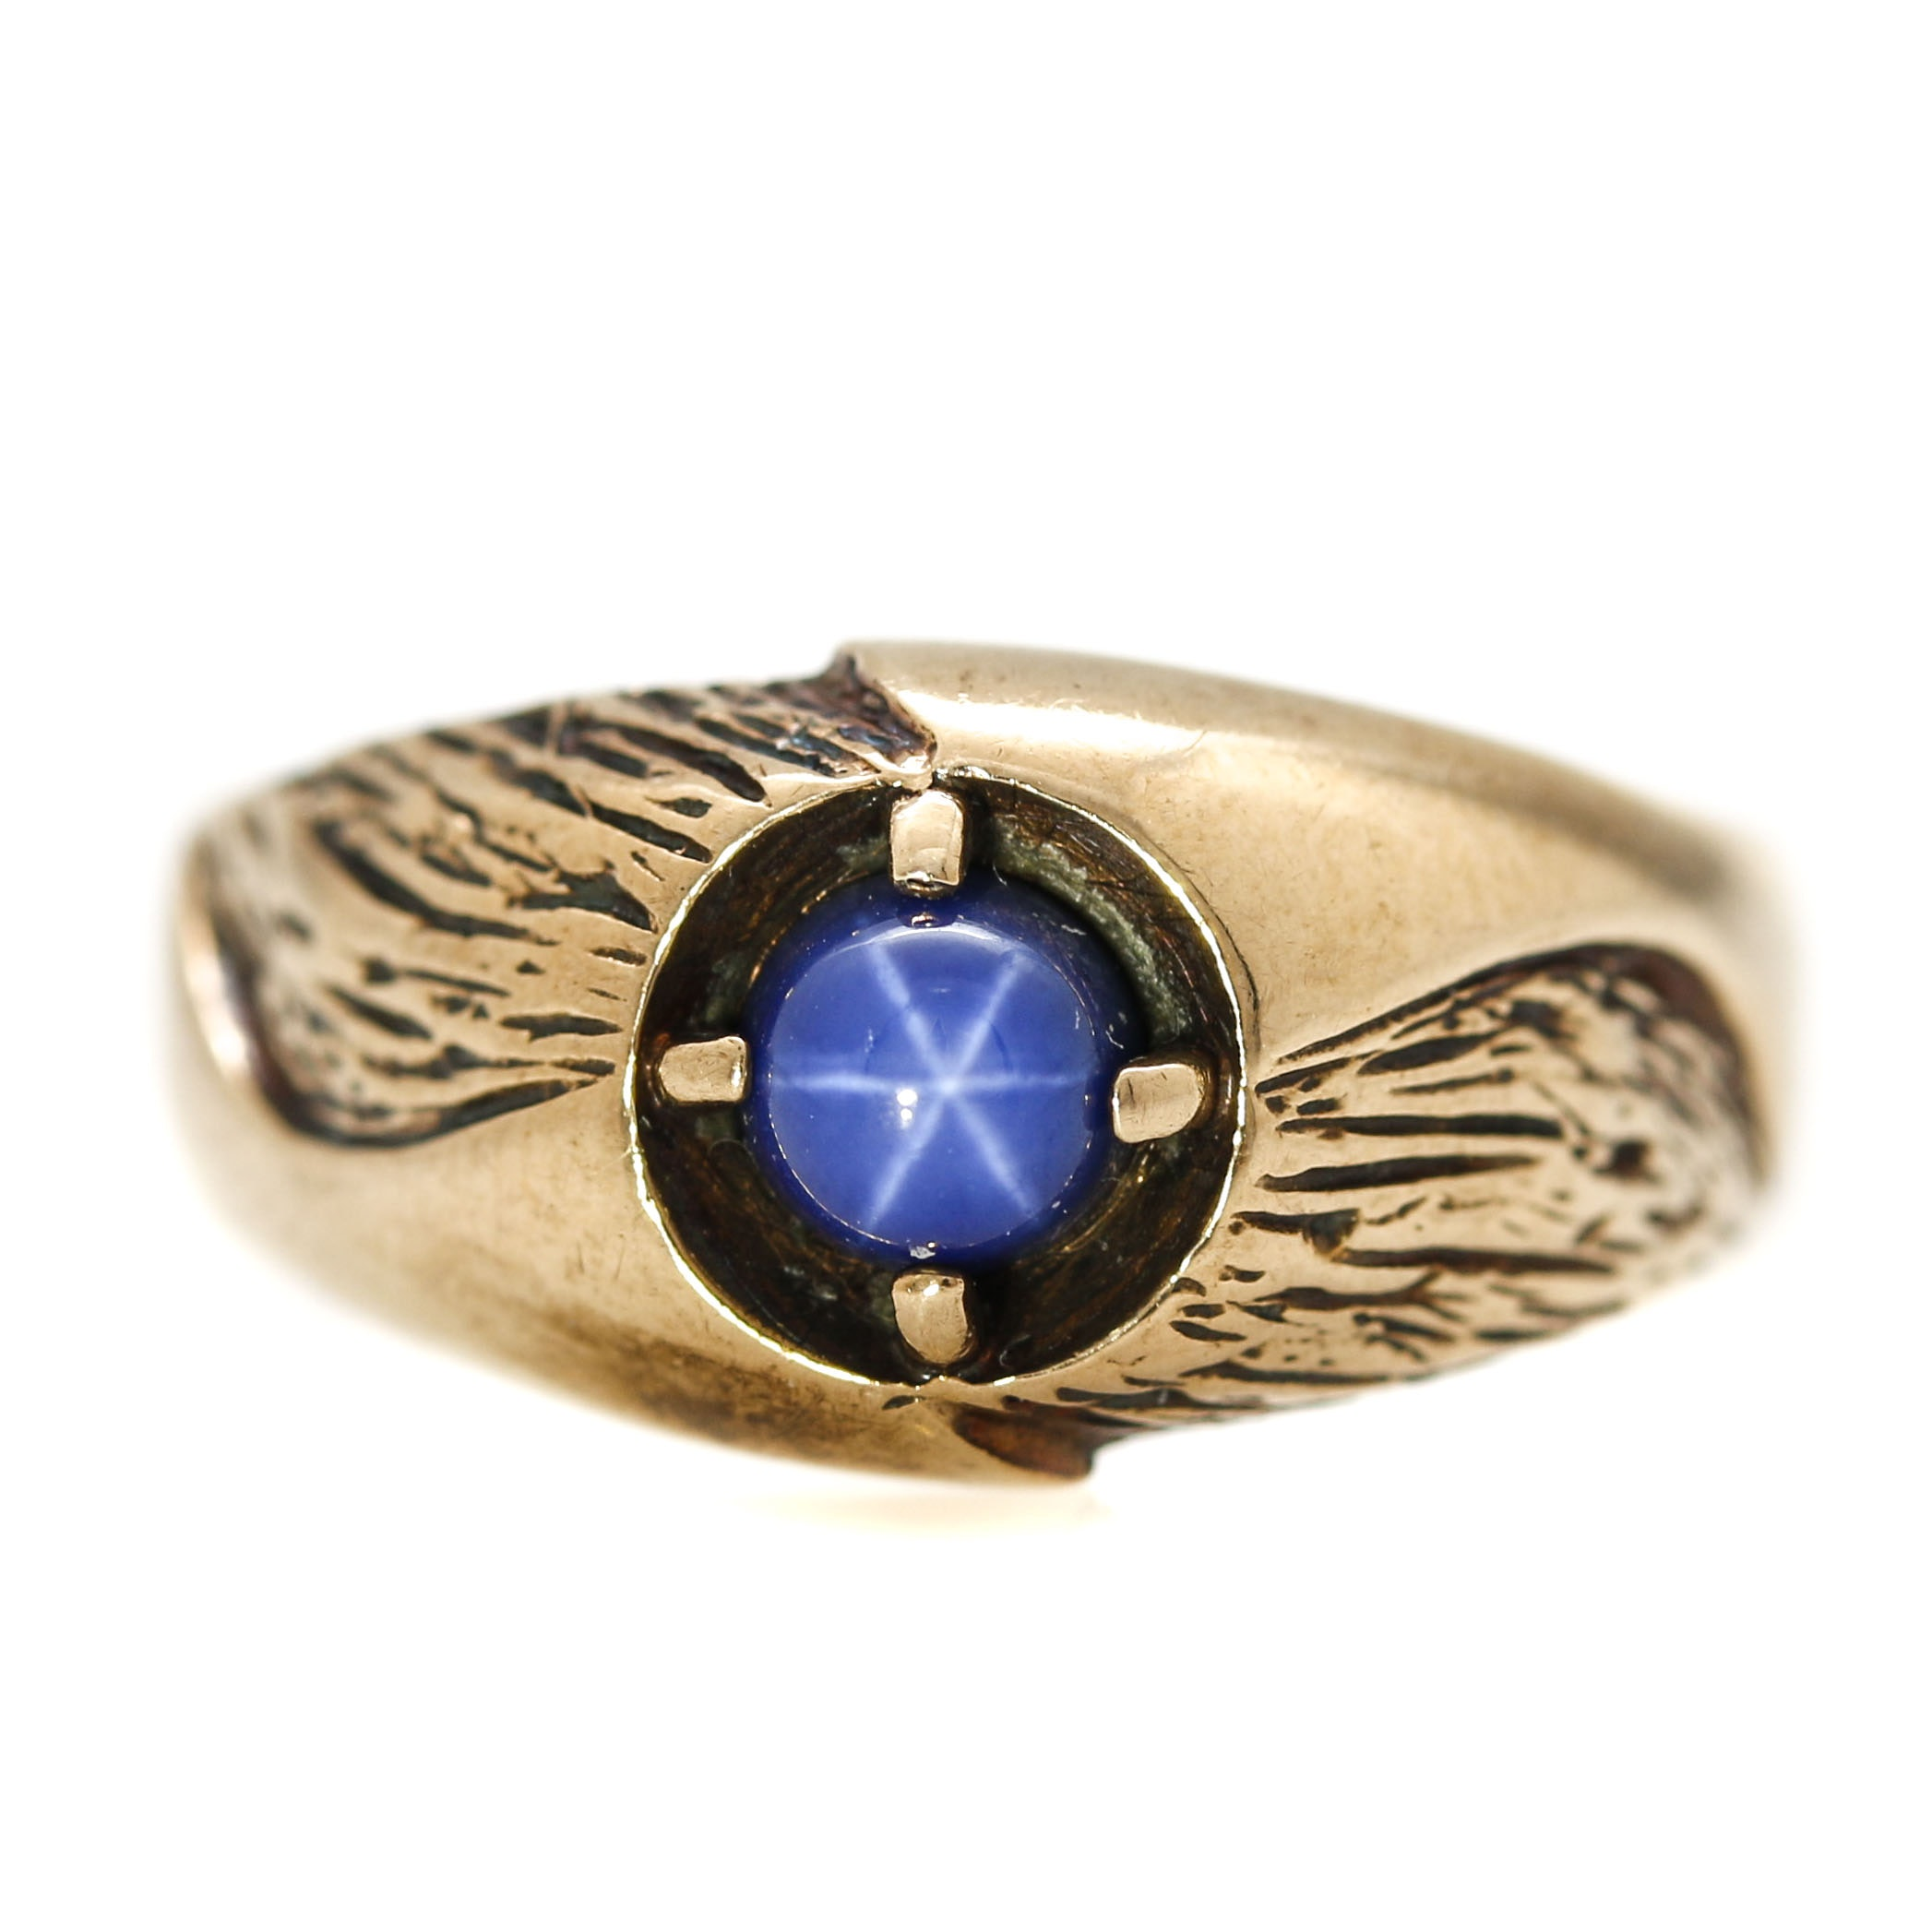 Zales 10K Yellow Gold Synthetic Star Sapphire Ring